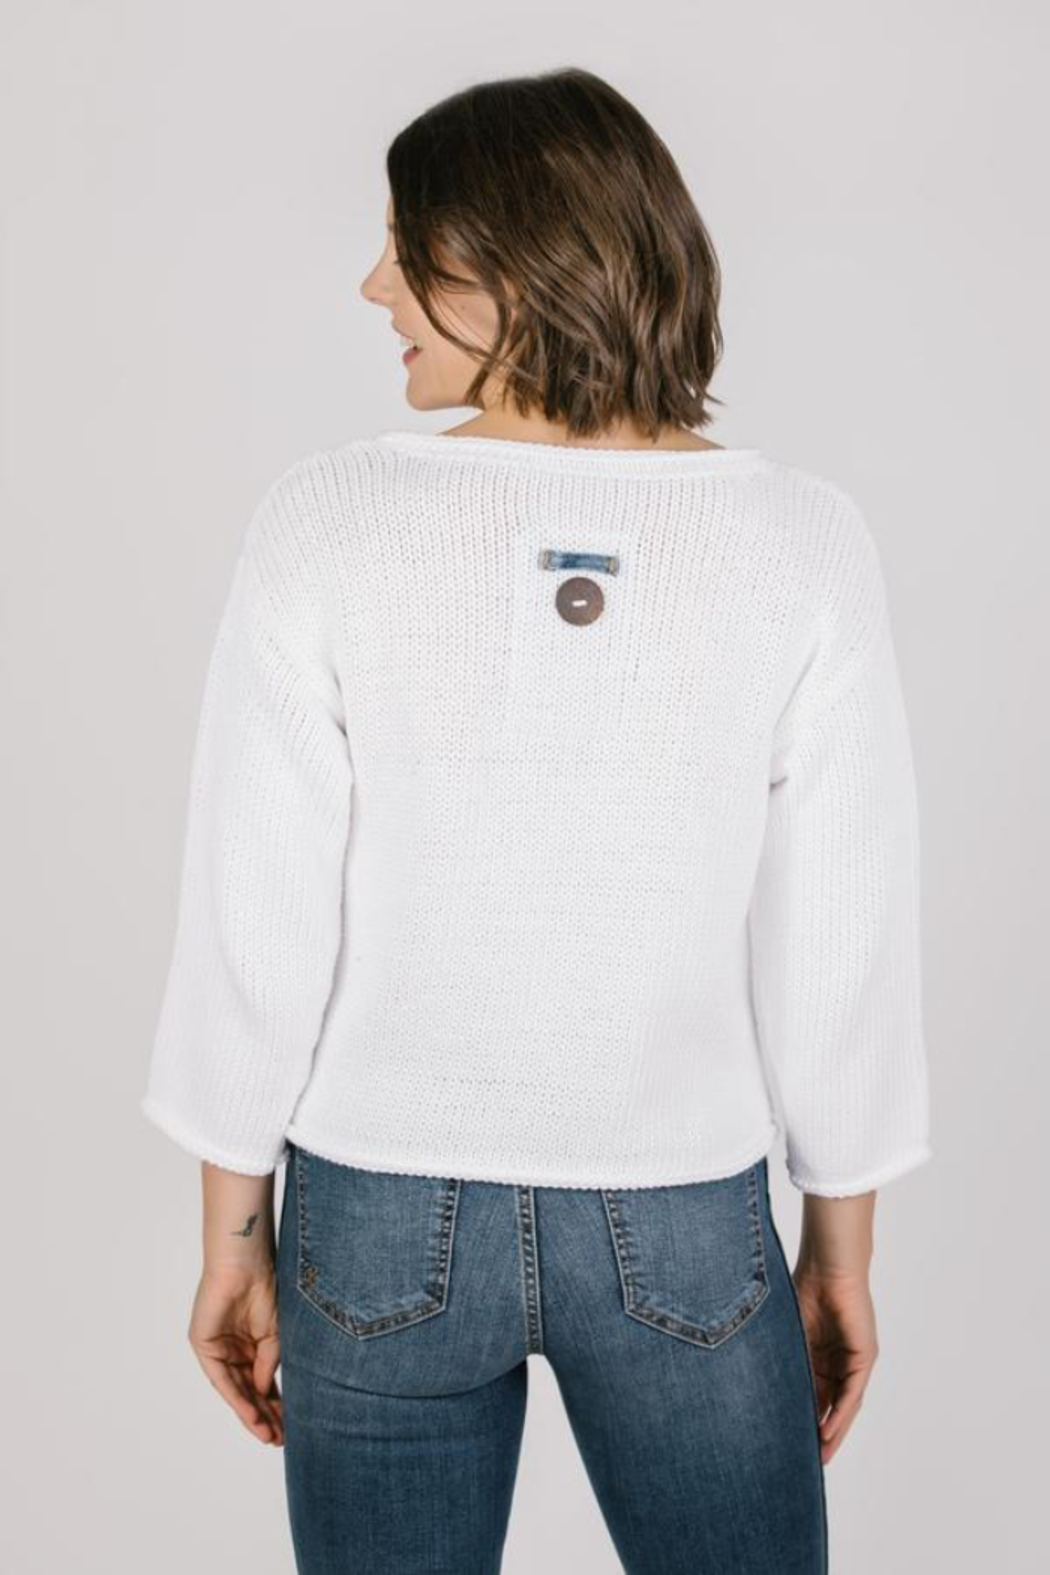 Shannon Passero Marion Pullover - Side Cropped Image